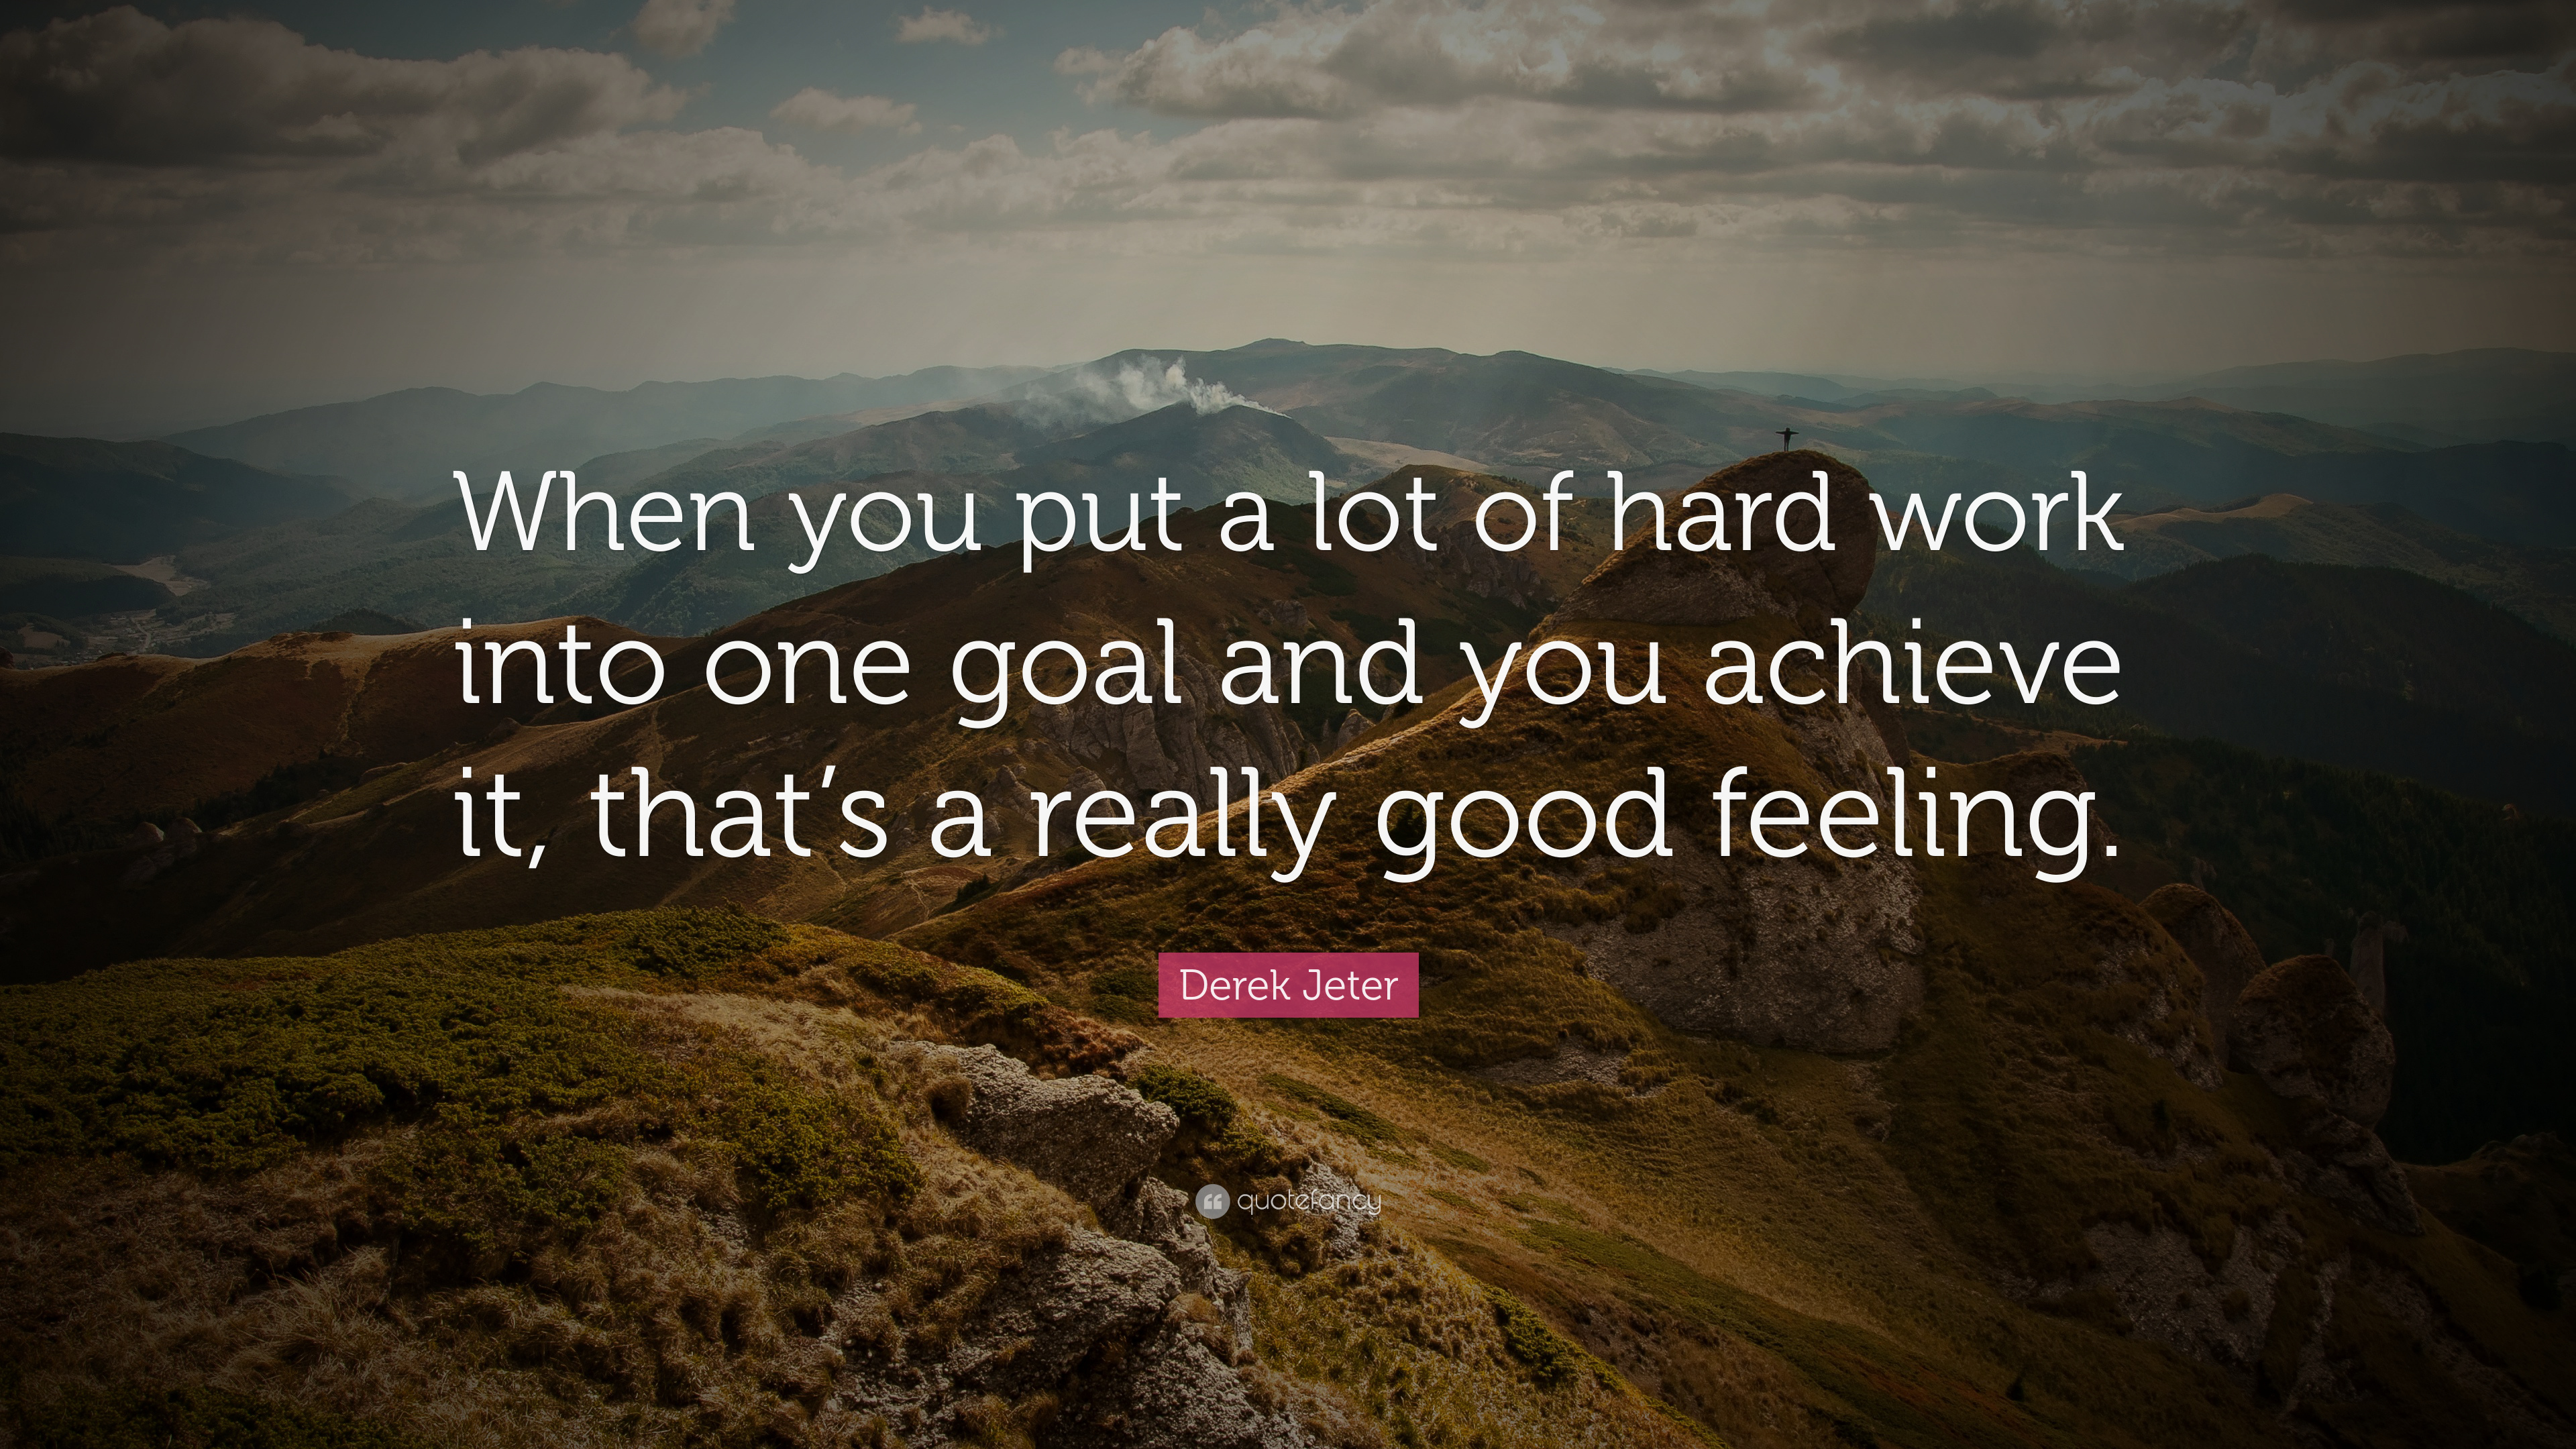 Derek Jeter Quote When You Put A Lot Of Hard Work Into One Goal